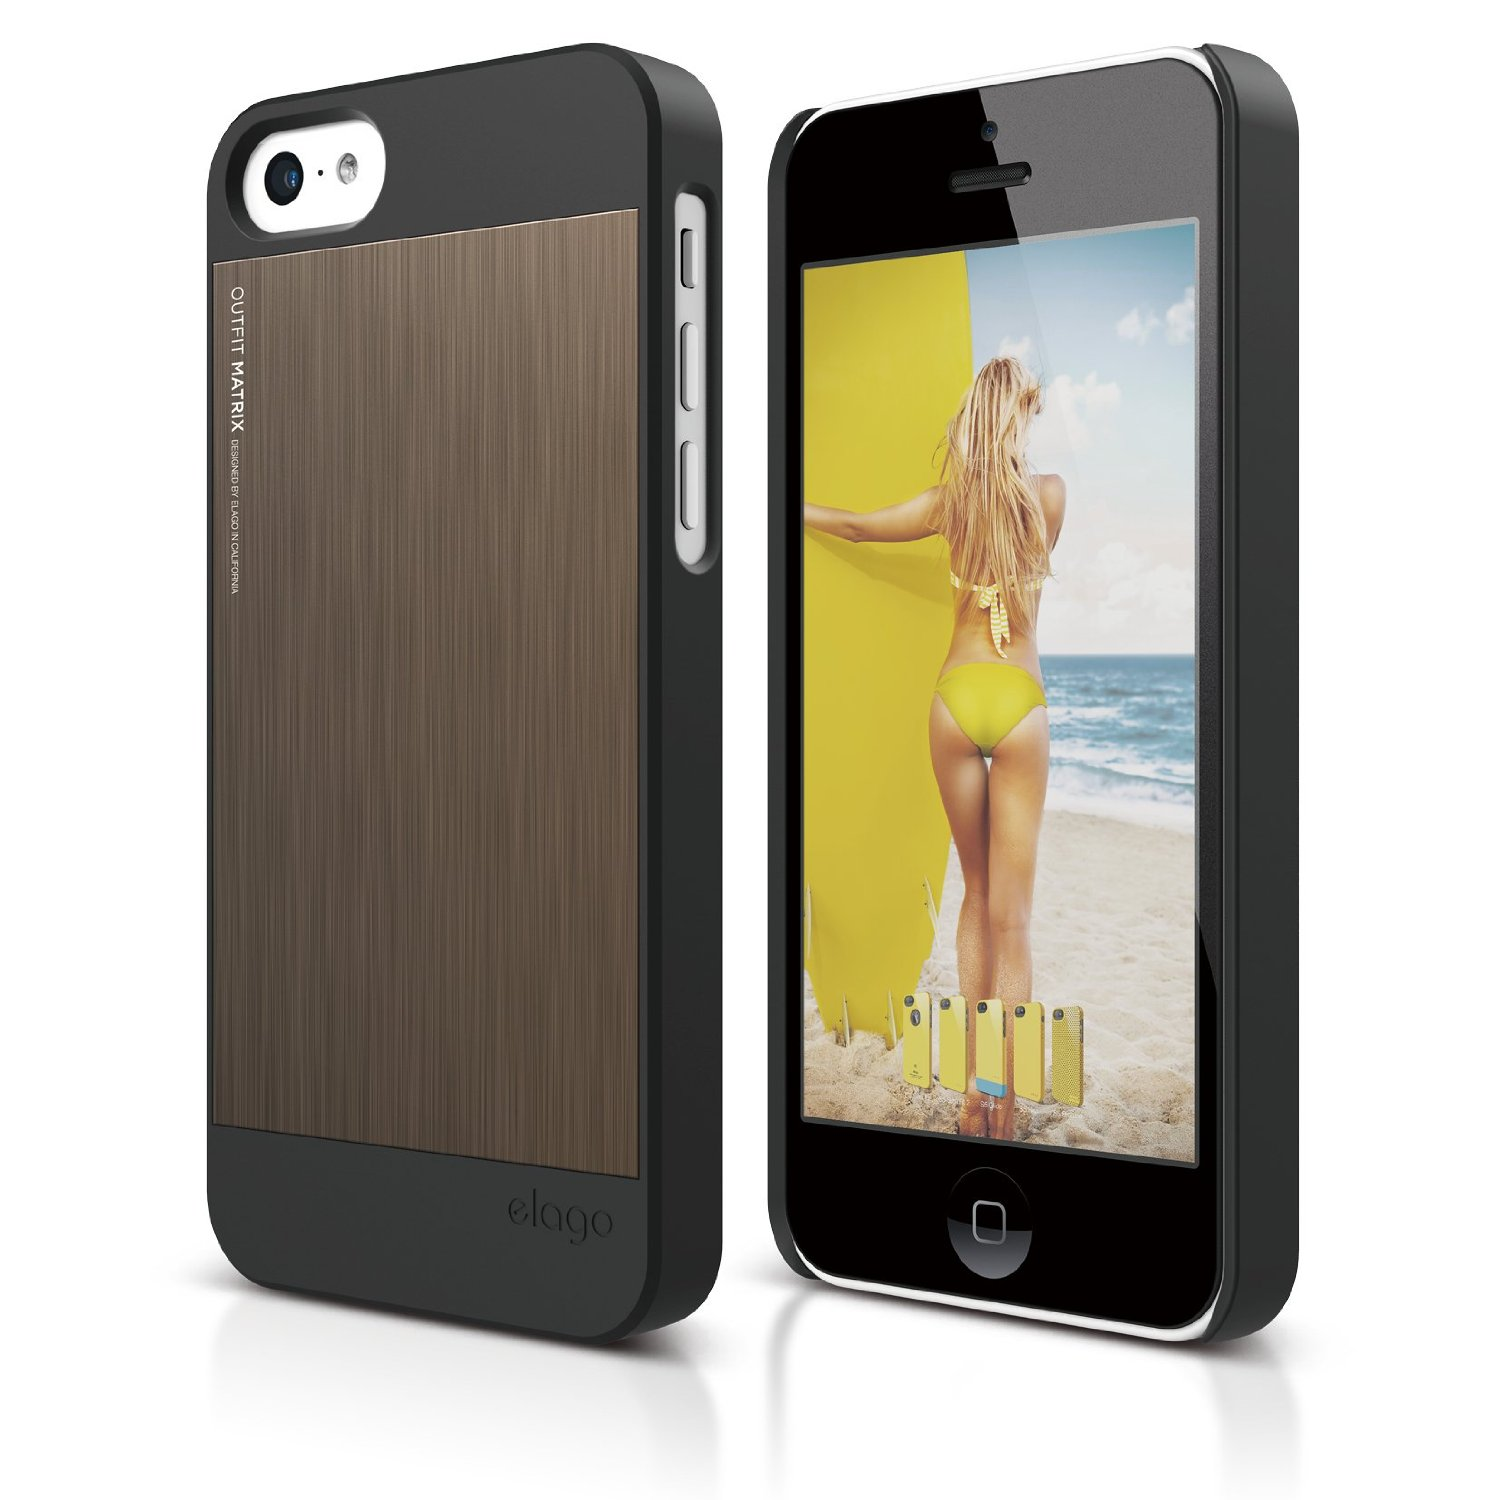 S5c Outfit Matrix Case For Iphone 5c Black Chocolate